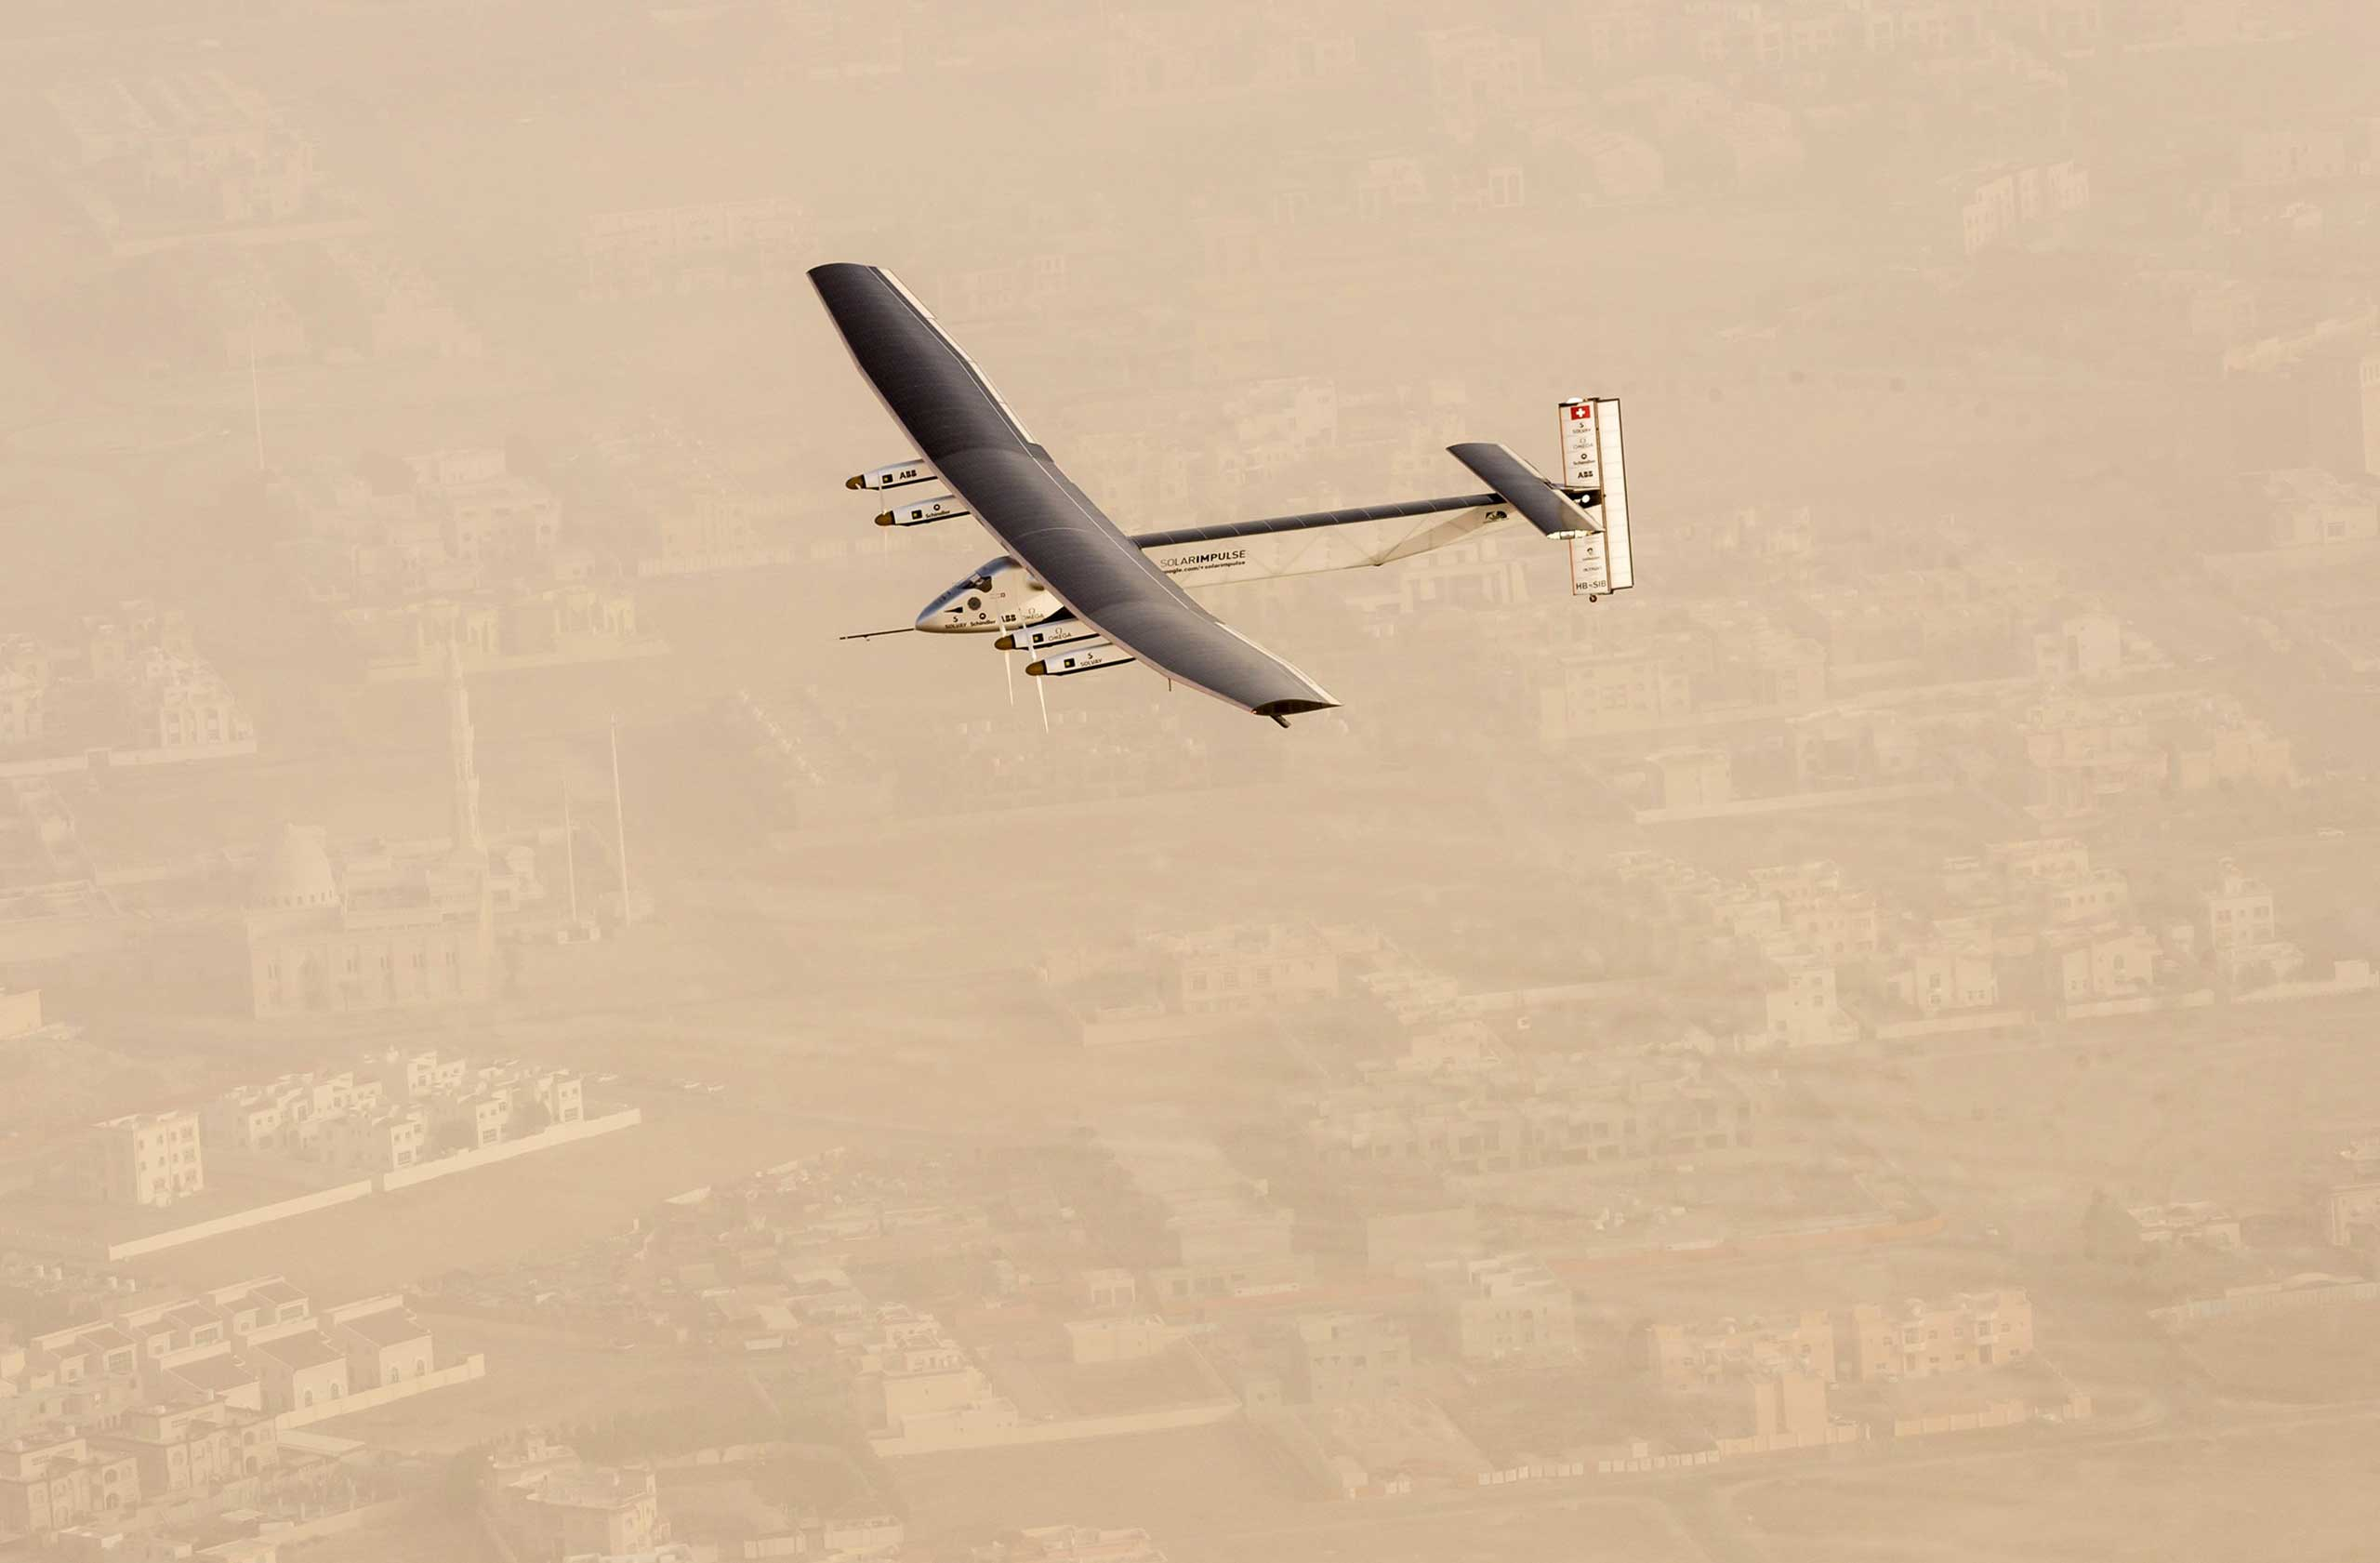 Solar Impulse 2, a solar-powered airplane, takes flight as it begins its historic round-the-world journey from Al Bateen Airport in Abu Dhabi on March 9, 2015.